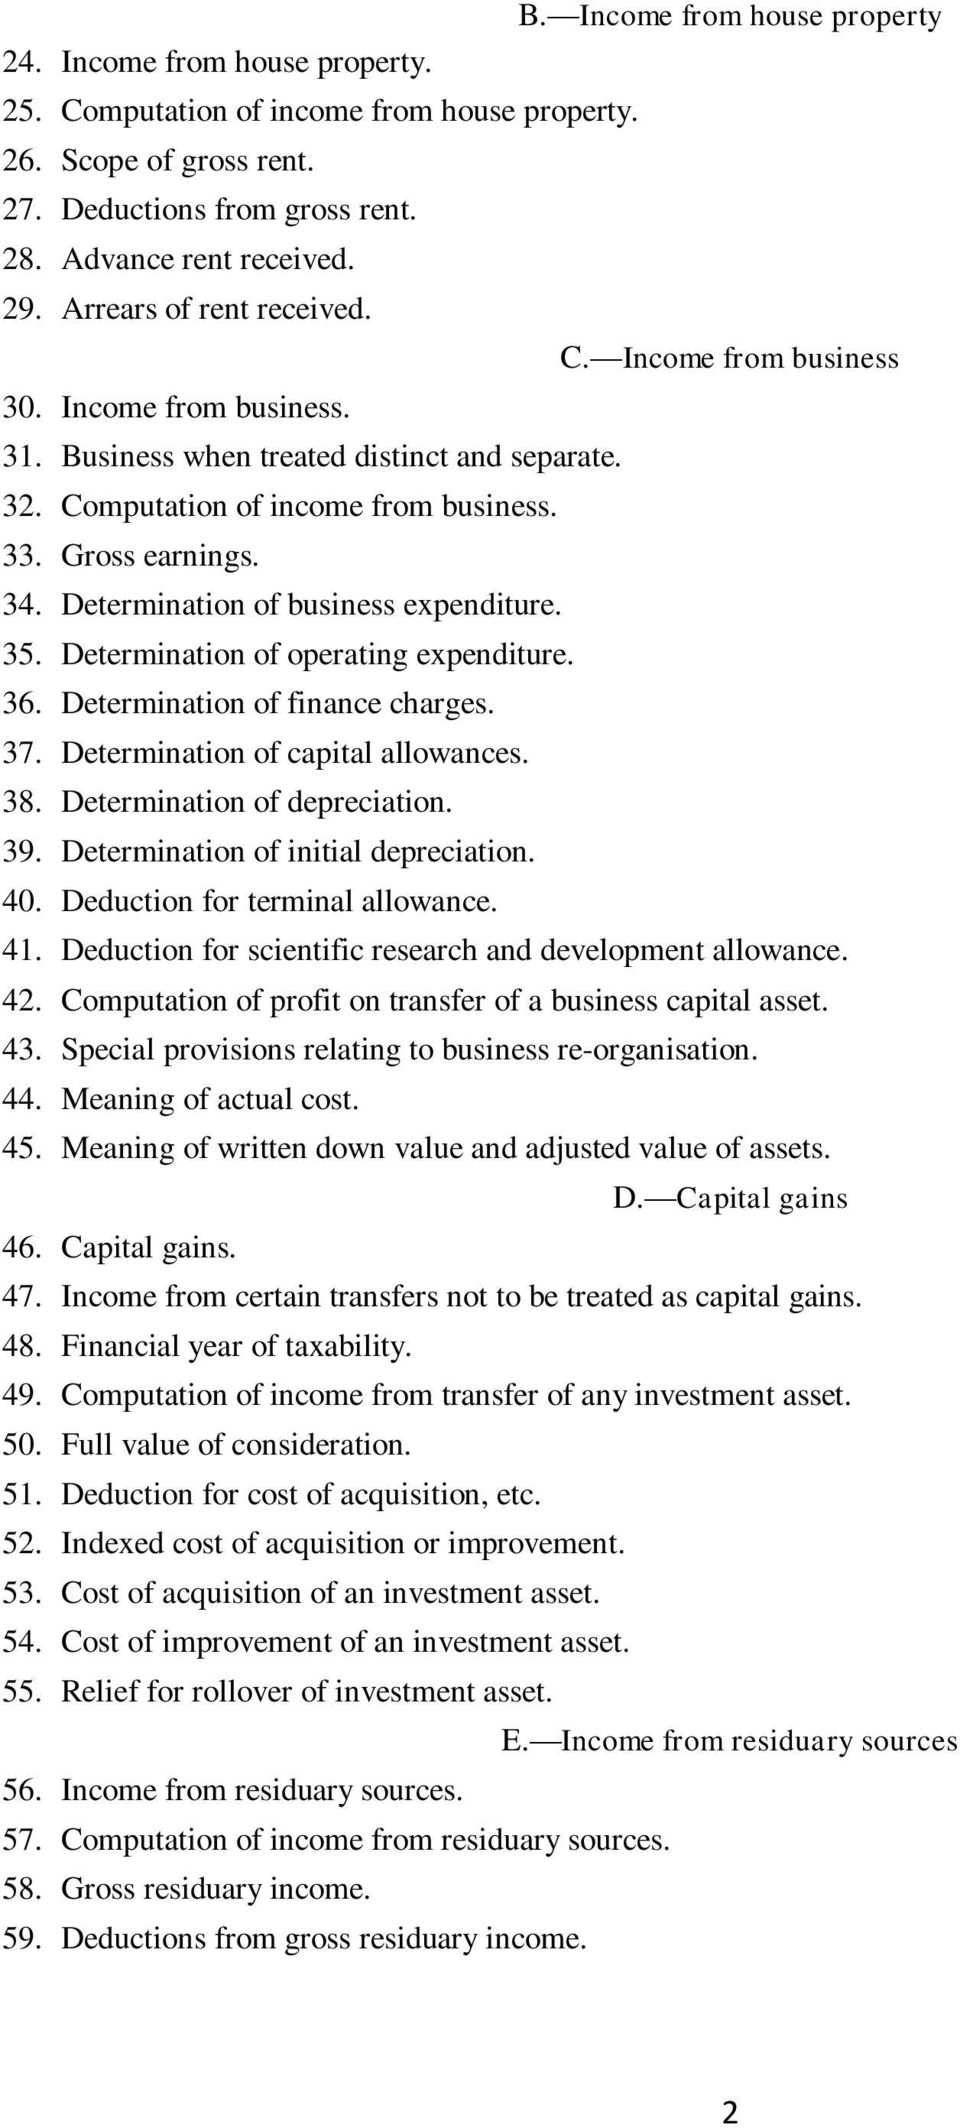 Determination of business expenditure. 35. Determination of operating expenditure. 36. Determination of finance charges. 37. Determination of capital allowances. 38. Determination of depreciation. 39.